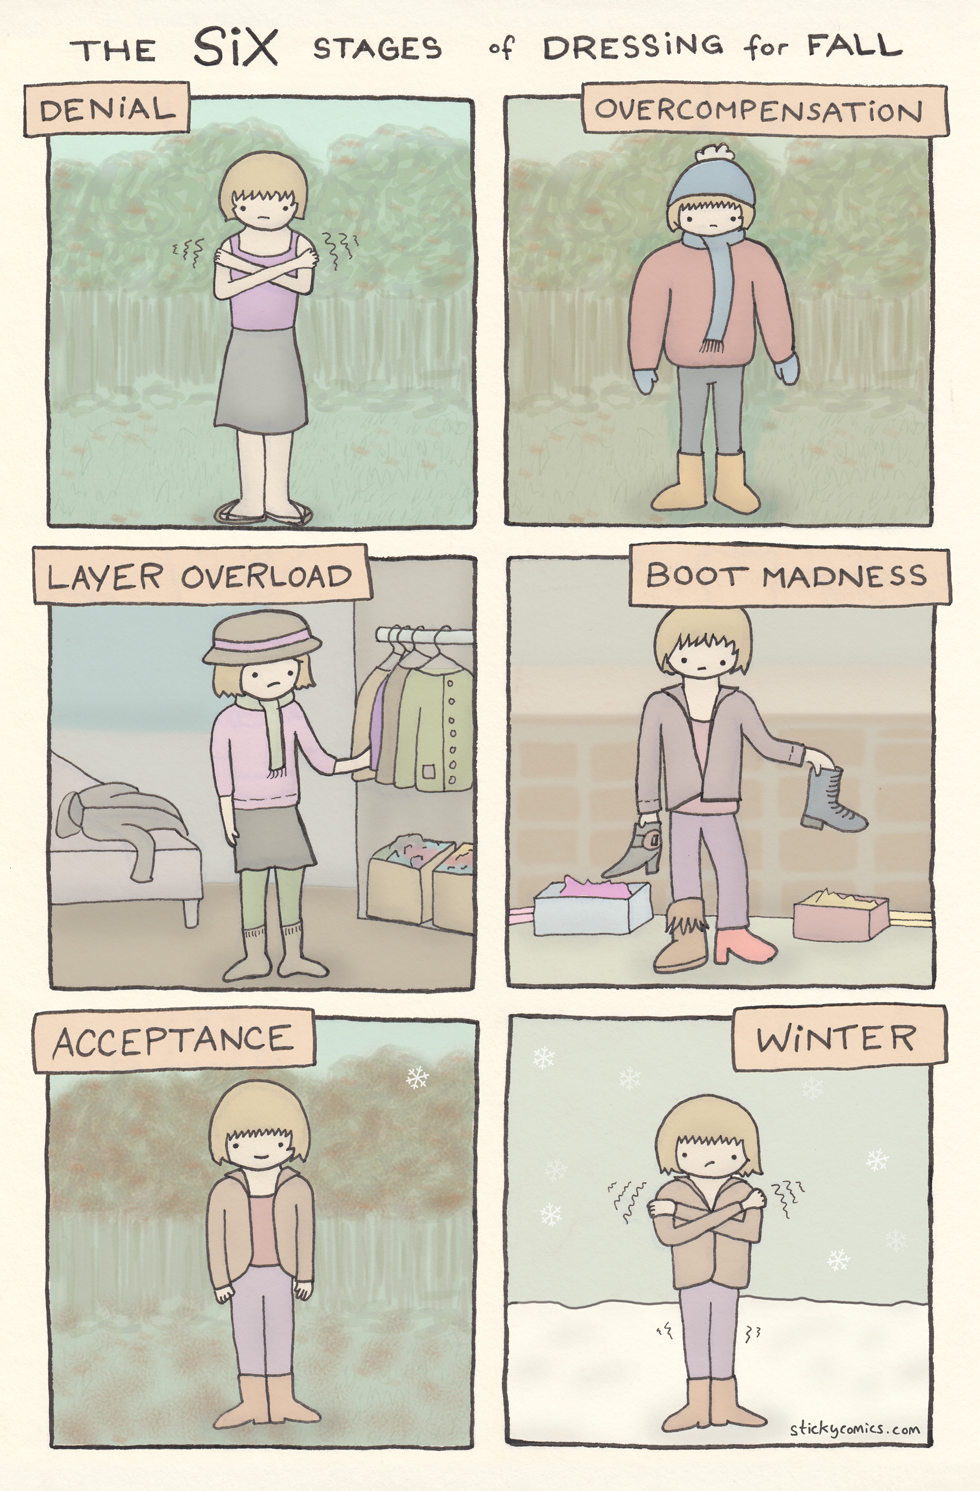 6 emotional stages of dressing for Fall